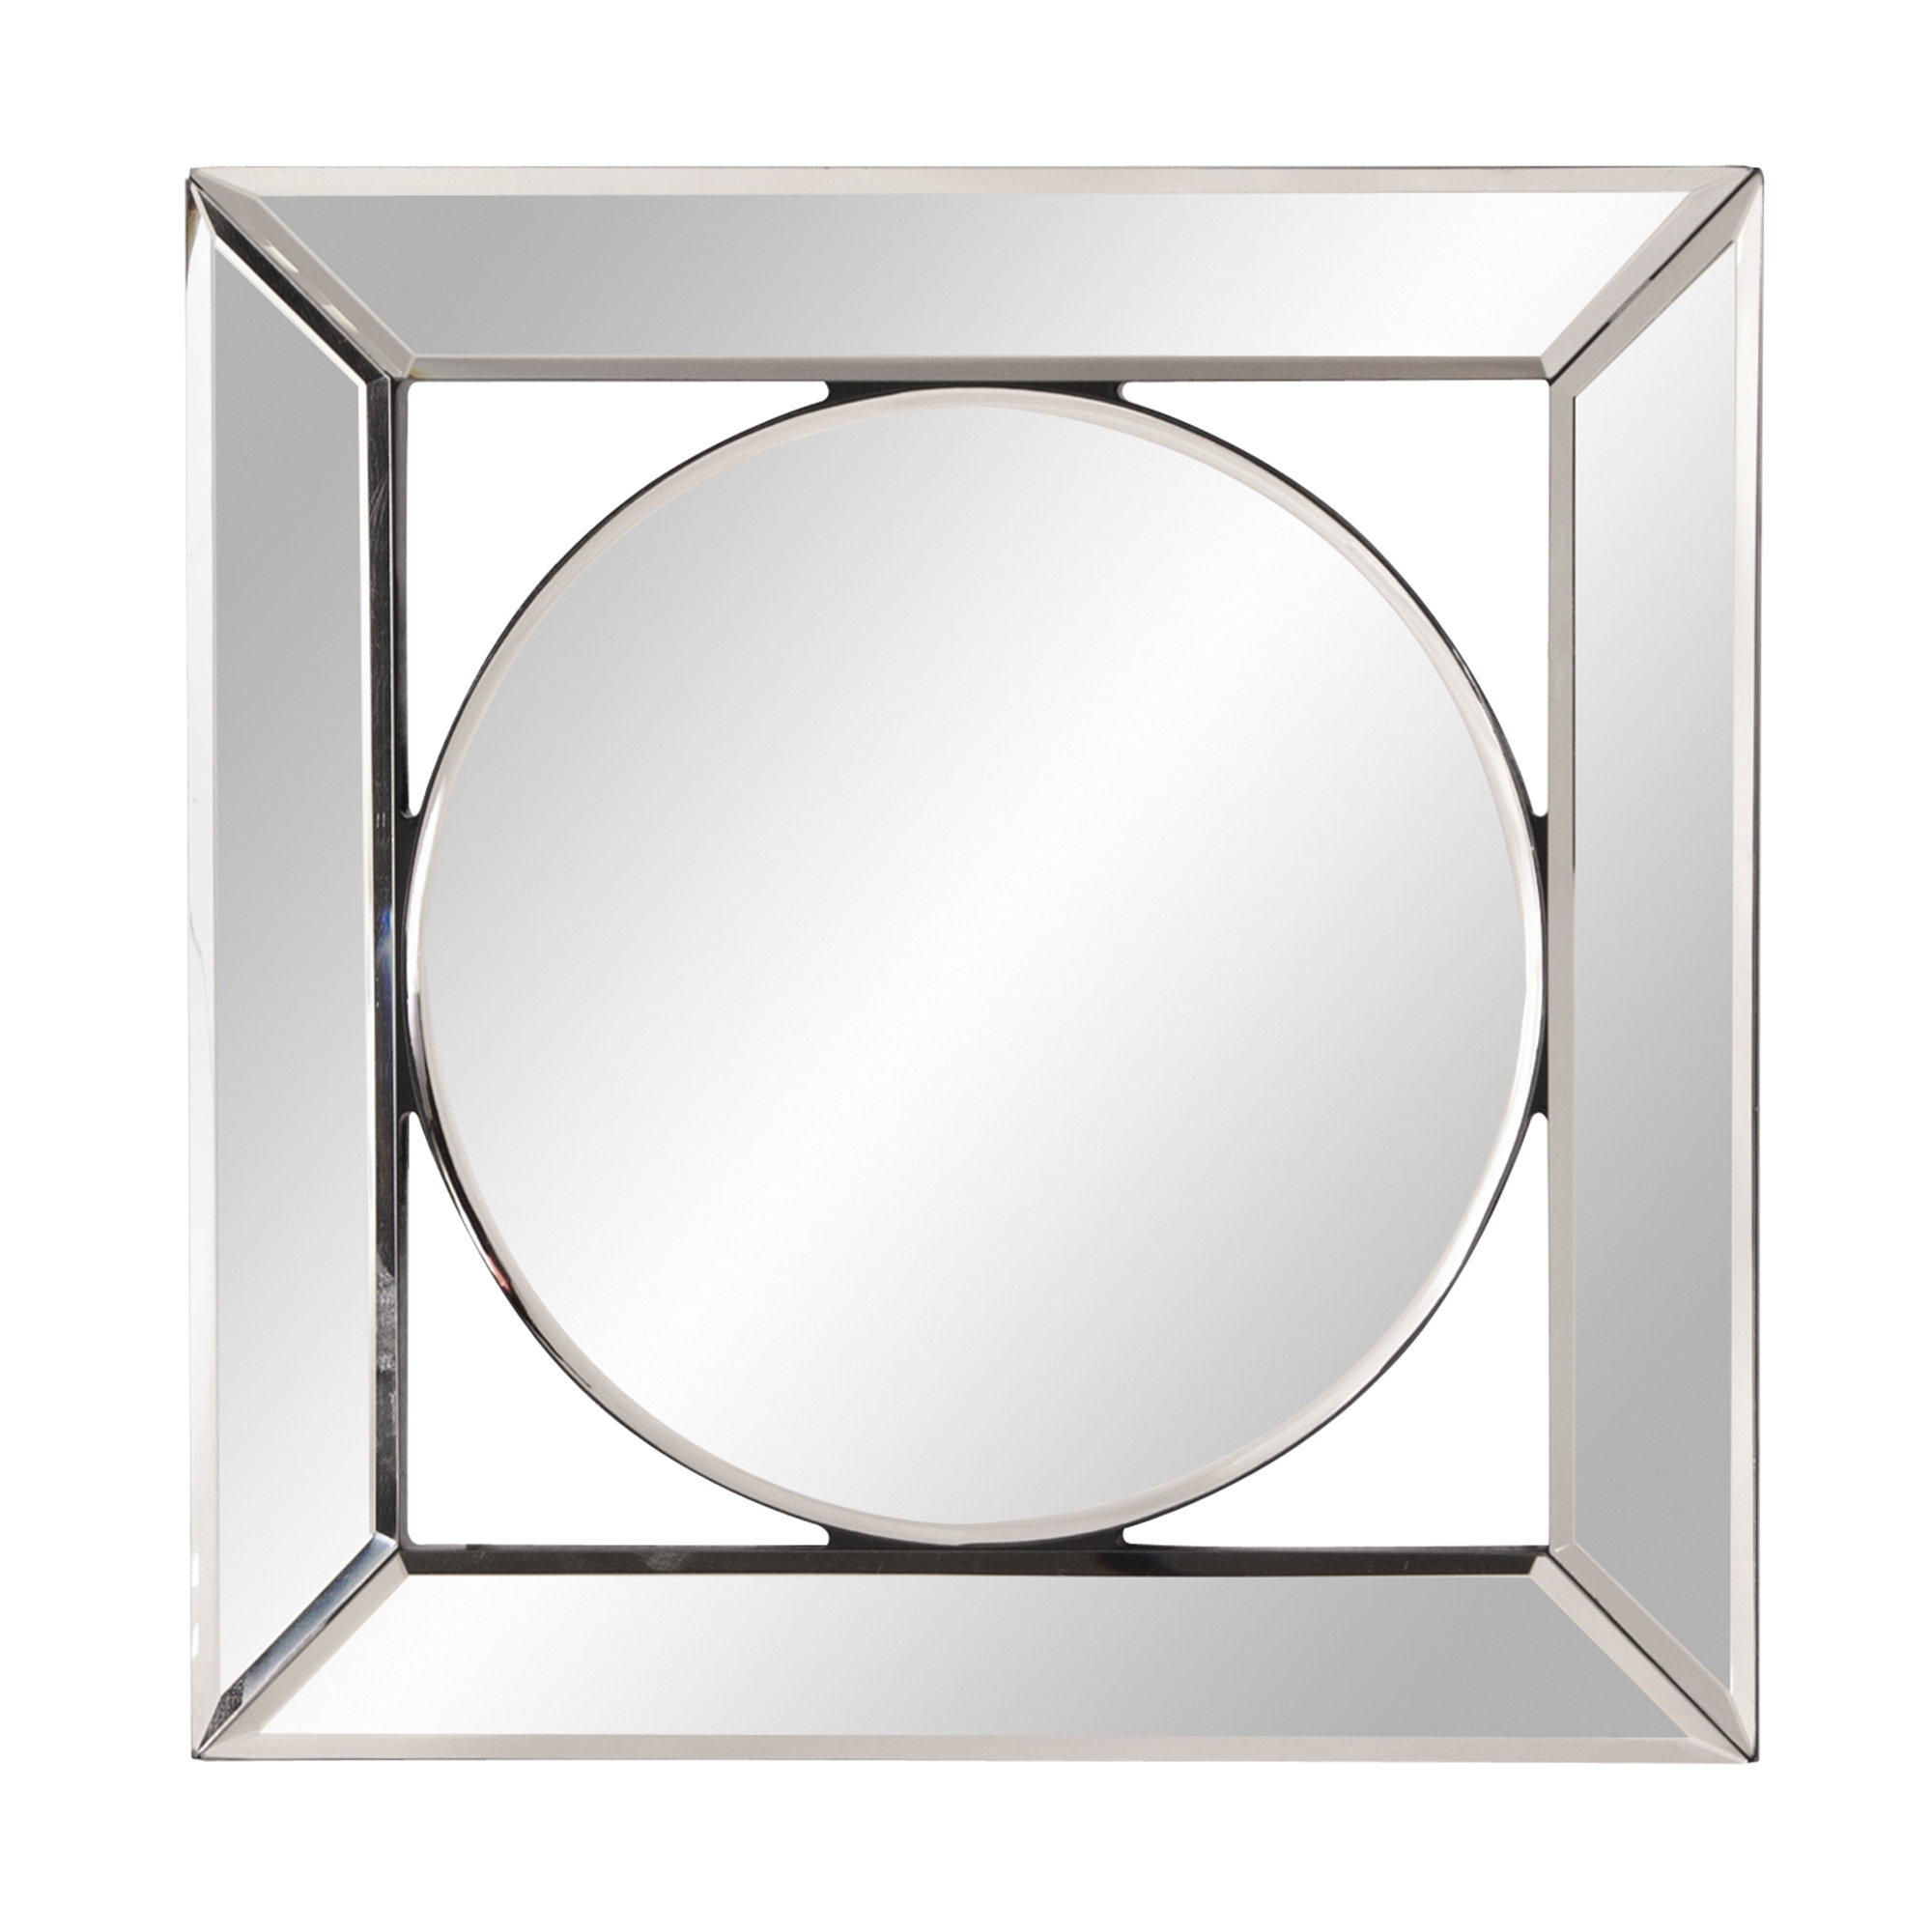 2020 Newtown Accent Mirrors Regarding Square Hanging Accent Mirror (View 3 of 20)